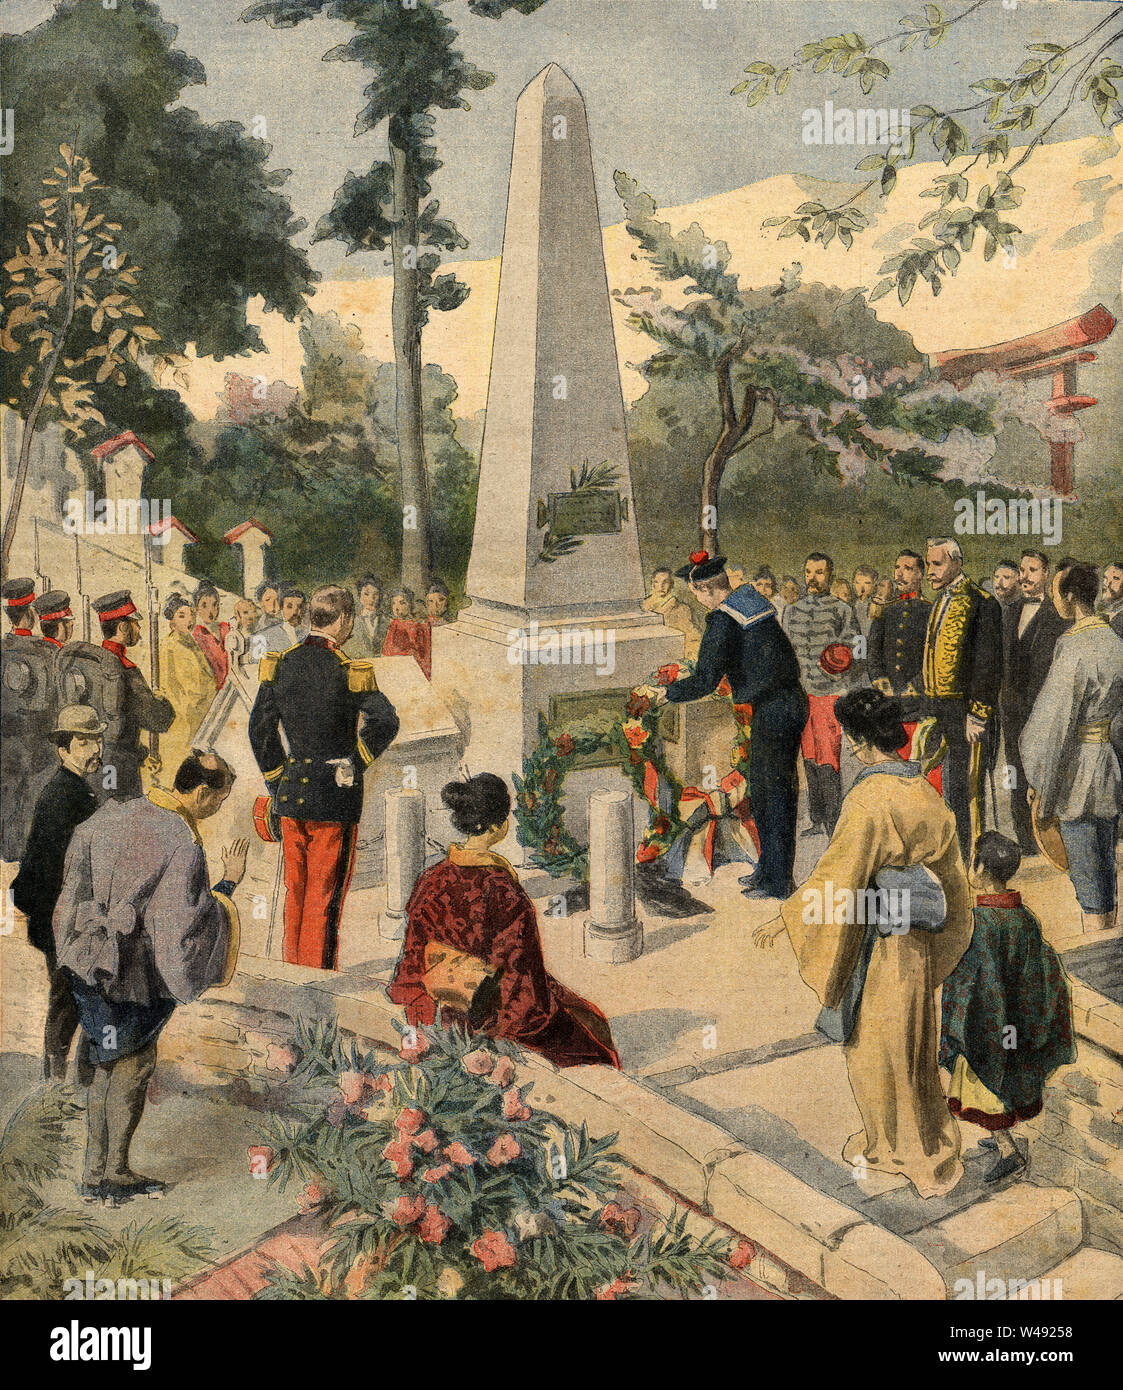 [ 1900s Japan - Funeral of French Sailors in Kobe ] —   French and local inhabitants of Kobe in Hyogo Prefecture at a memorial for French sailors who died after their ship Caravane collided with a Japanese cruiser in 1901 (Meiji 34).  Published in the daily Parisian newspaper Le Petit Journal on October 27, 1901 (Meiji 34).  Original text: 'Nos morts honorés au japon.'  20th century vintage newspaper illustration. - Stock Image